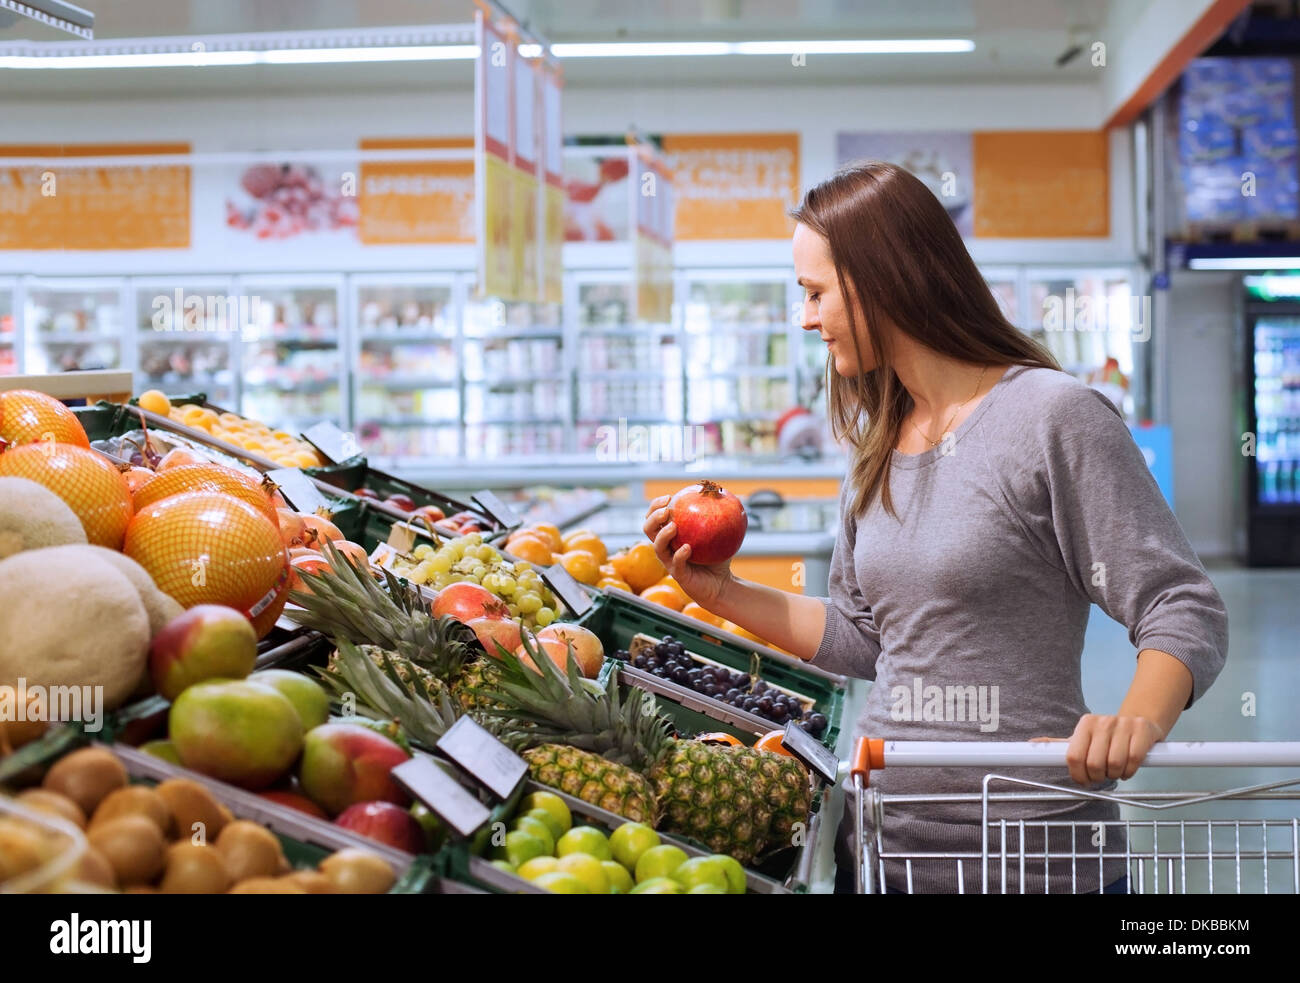 young woman in supermarket choosing fruits - Stock Image